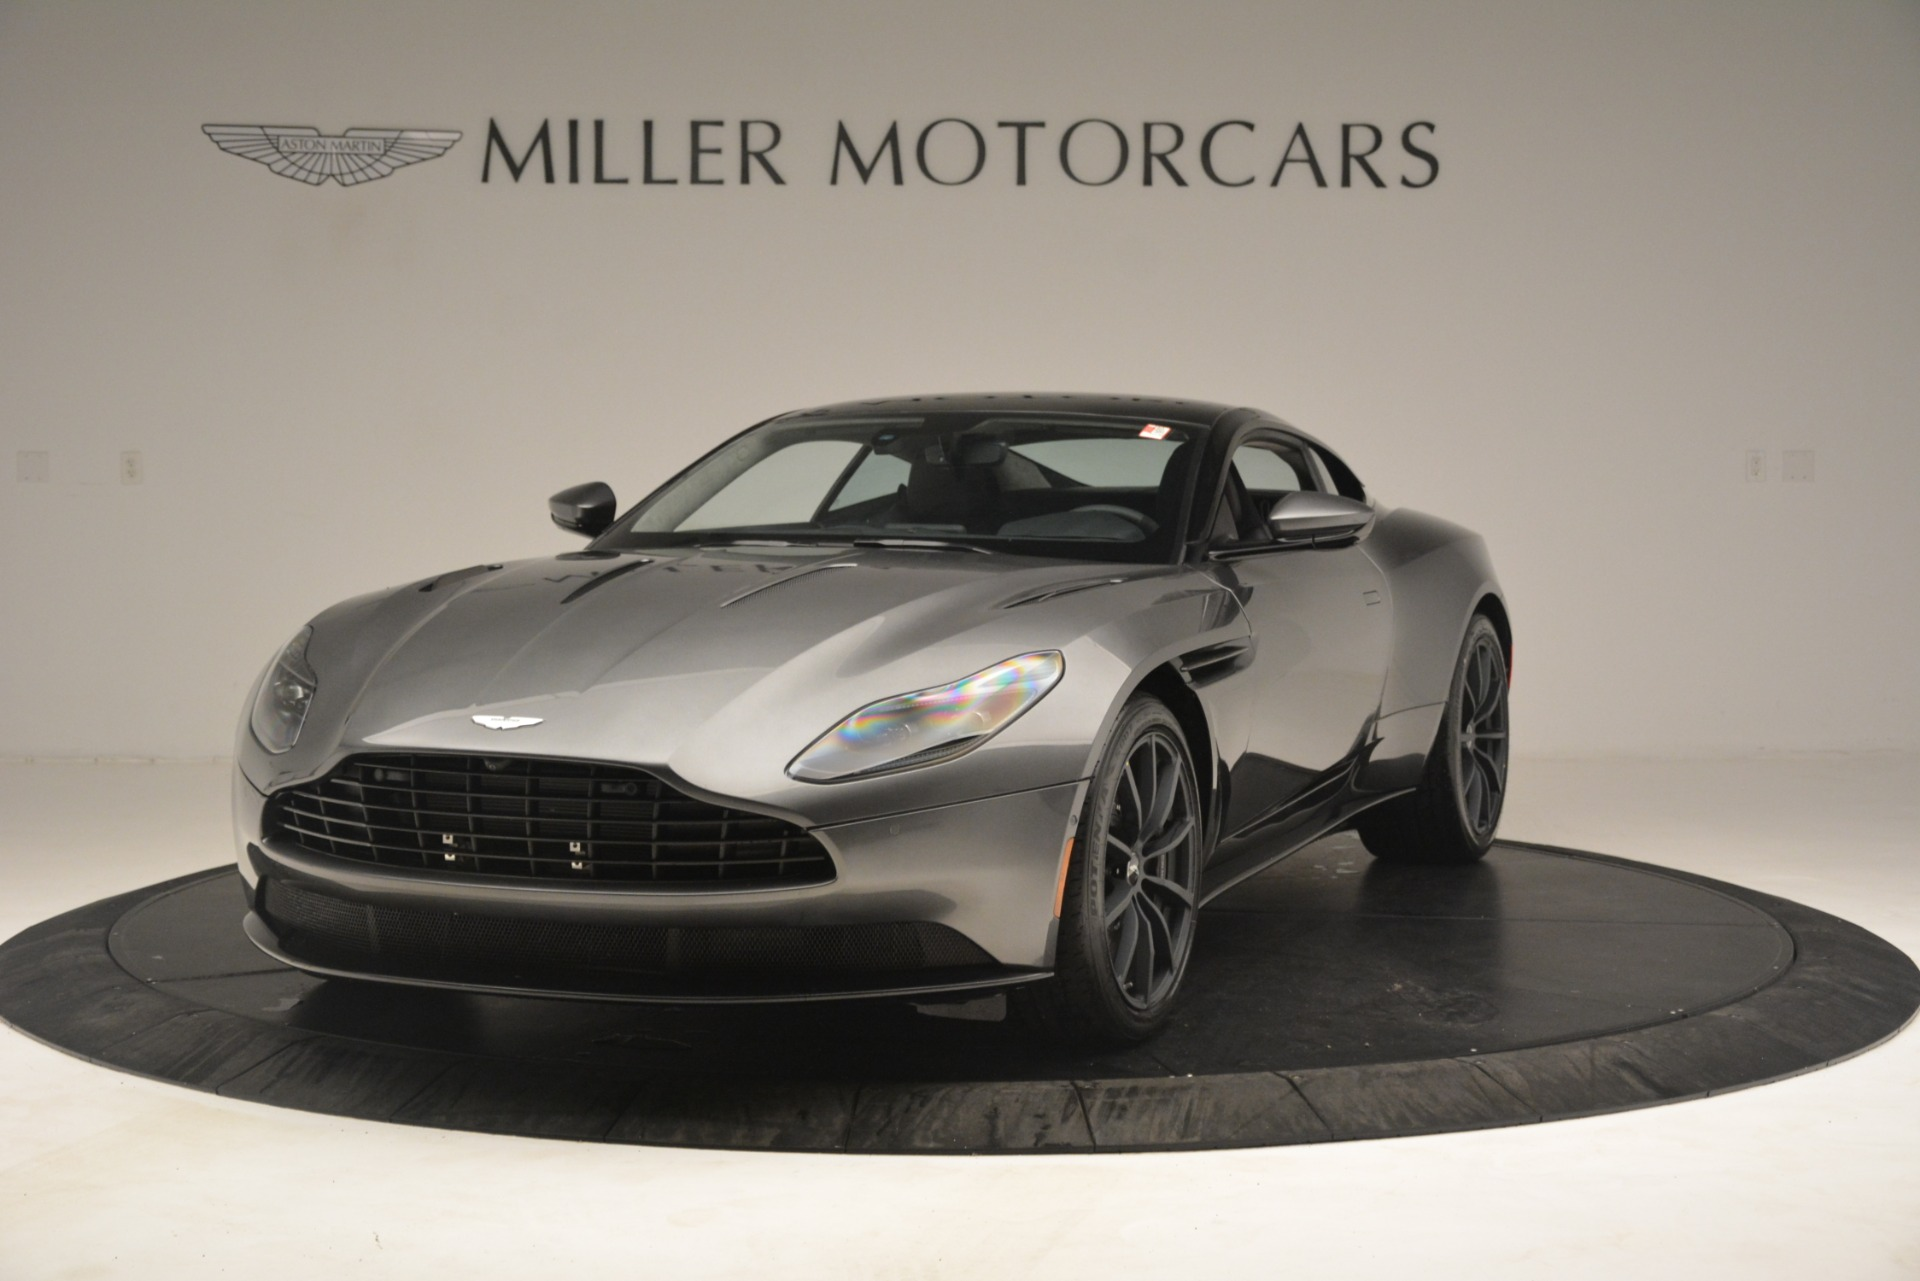 New 2019 Aston Martin DB11 V12 AMR Coupe For Sale In Westport, CT 3123_p2